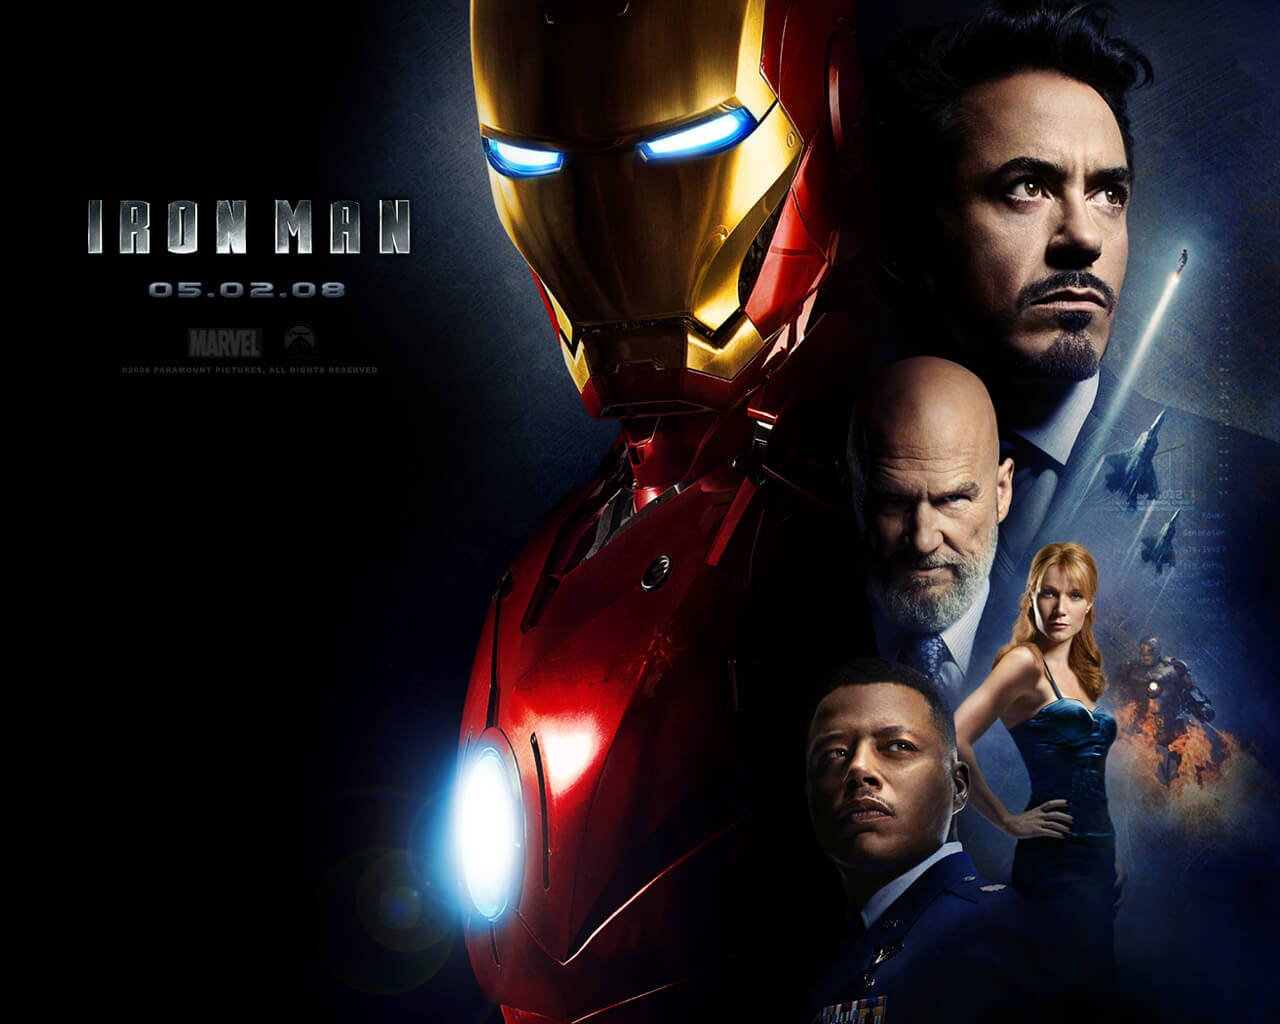 Iron Man 2008 - MCU's First Installment to a Multi-Series Saga